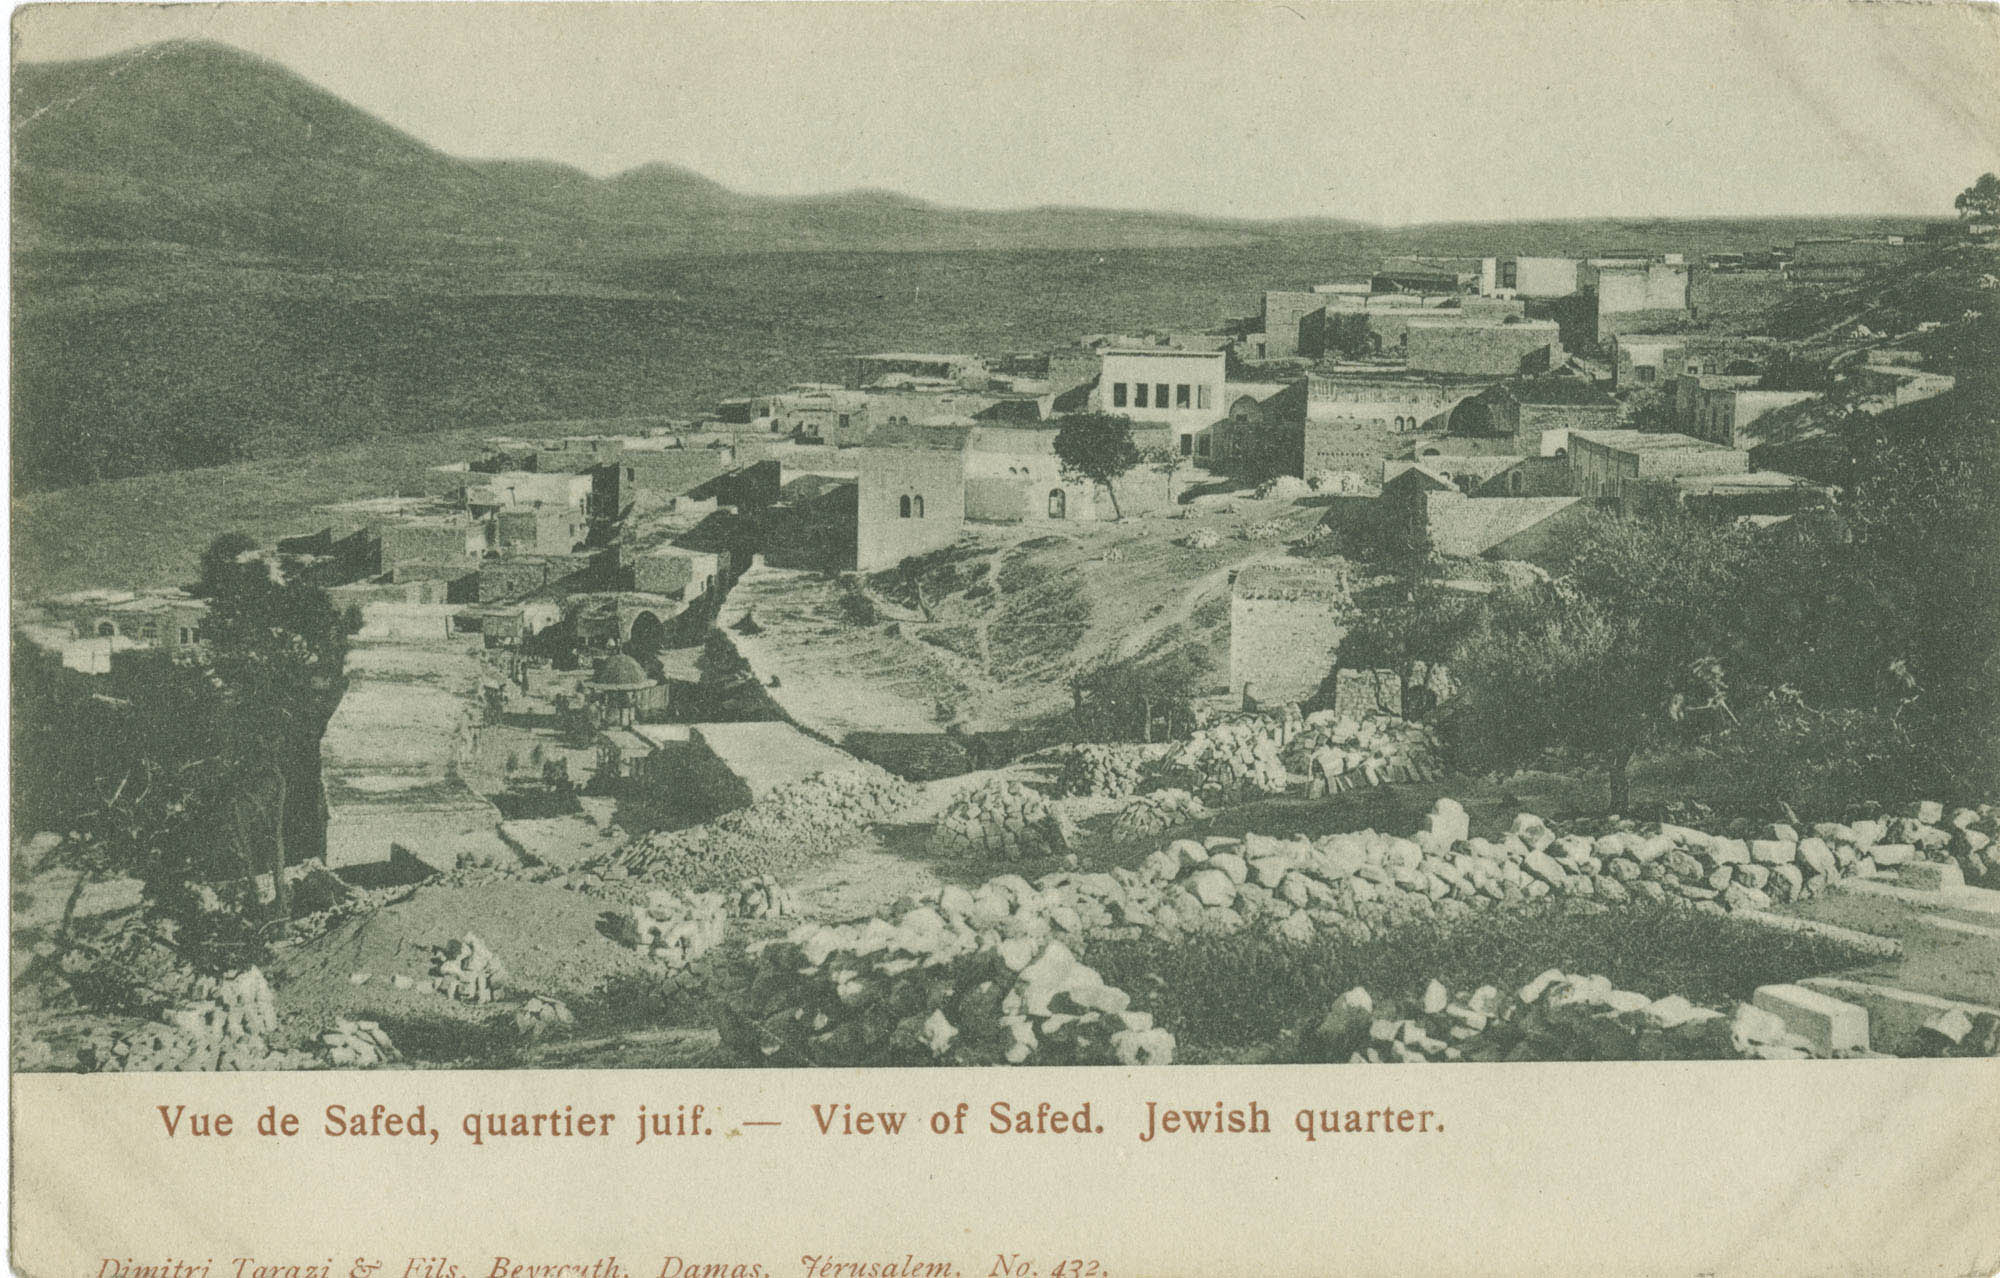 Vue de Safed, quartier juif. / View of Safed. Jewish Quarter